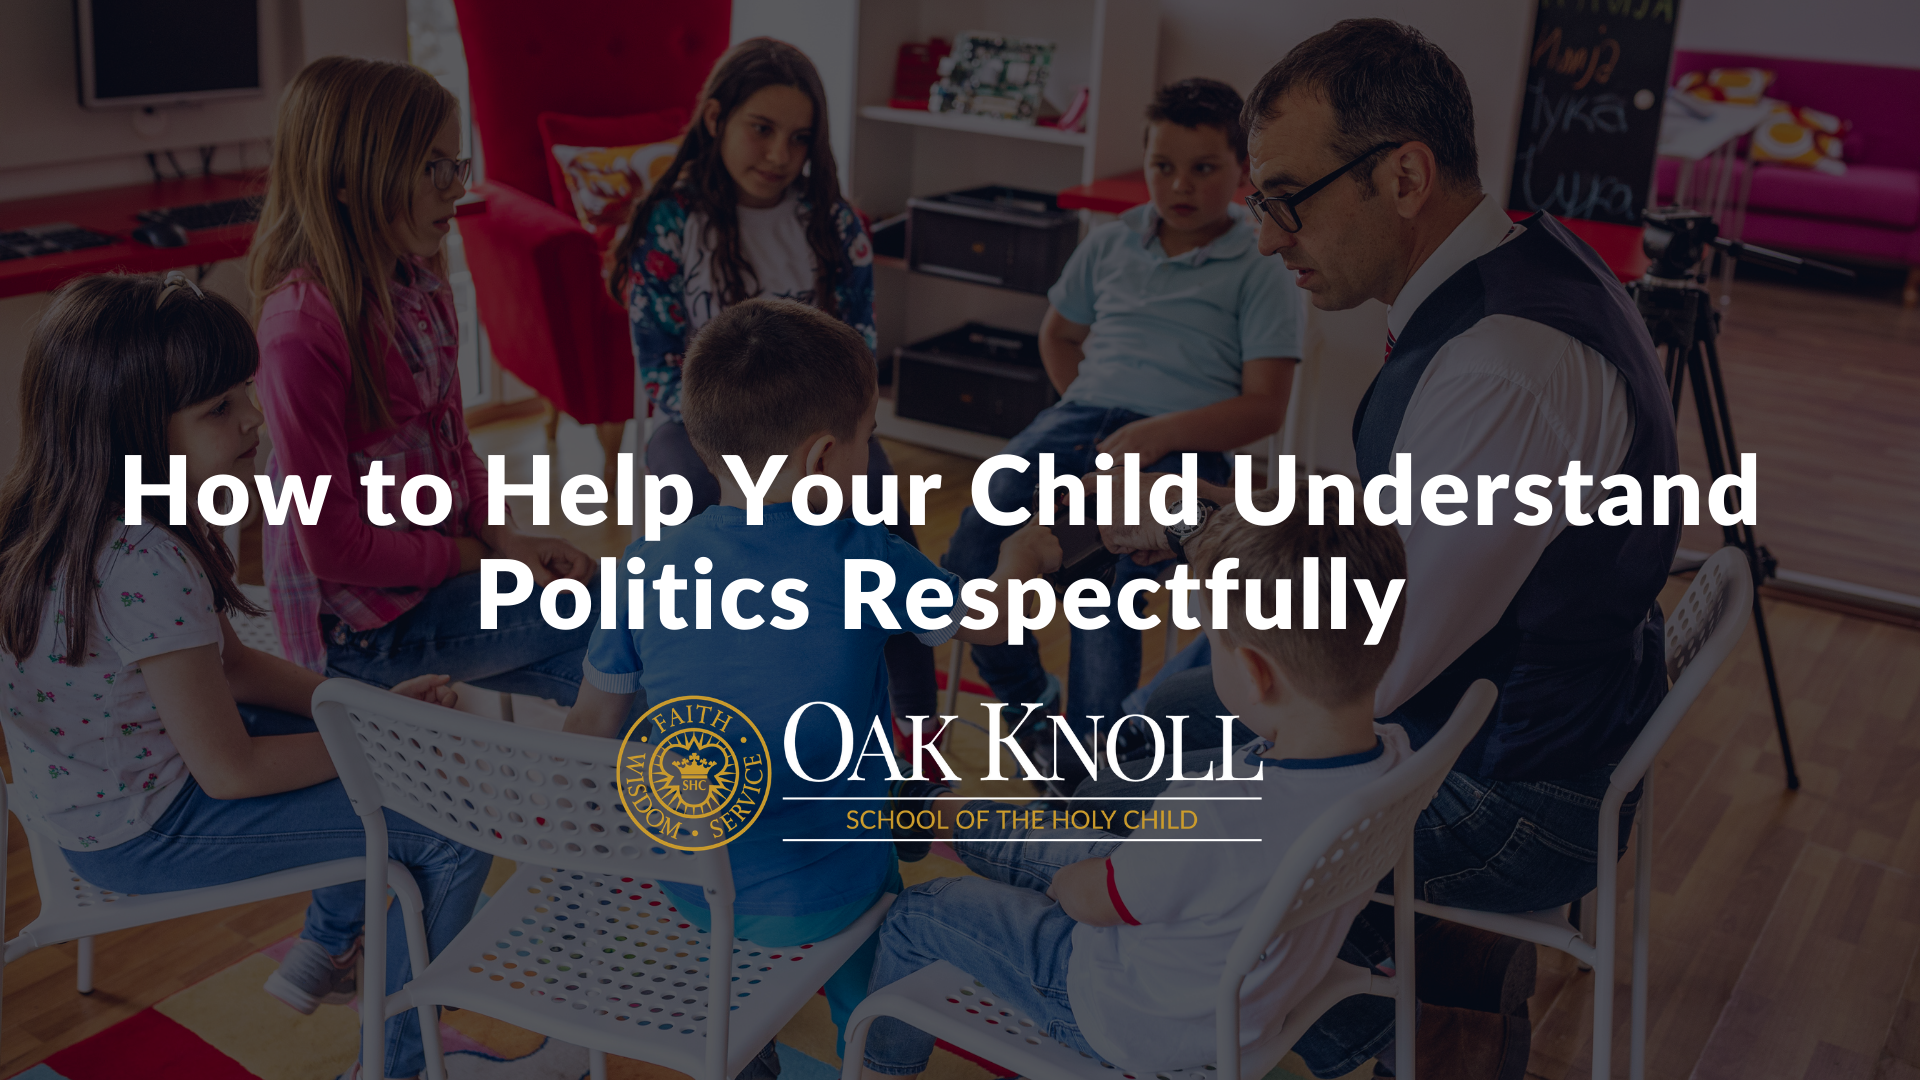 How to Help Your Child Understand Politics Respectfully